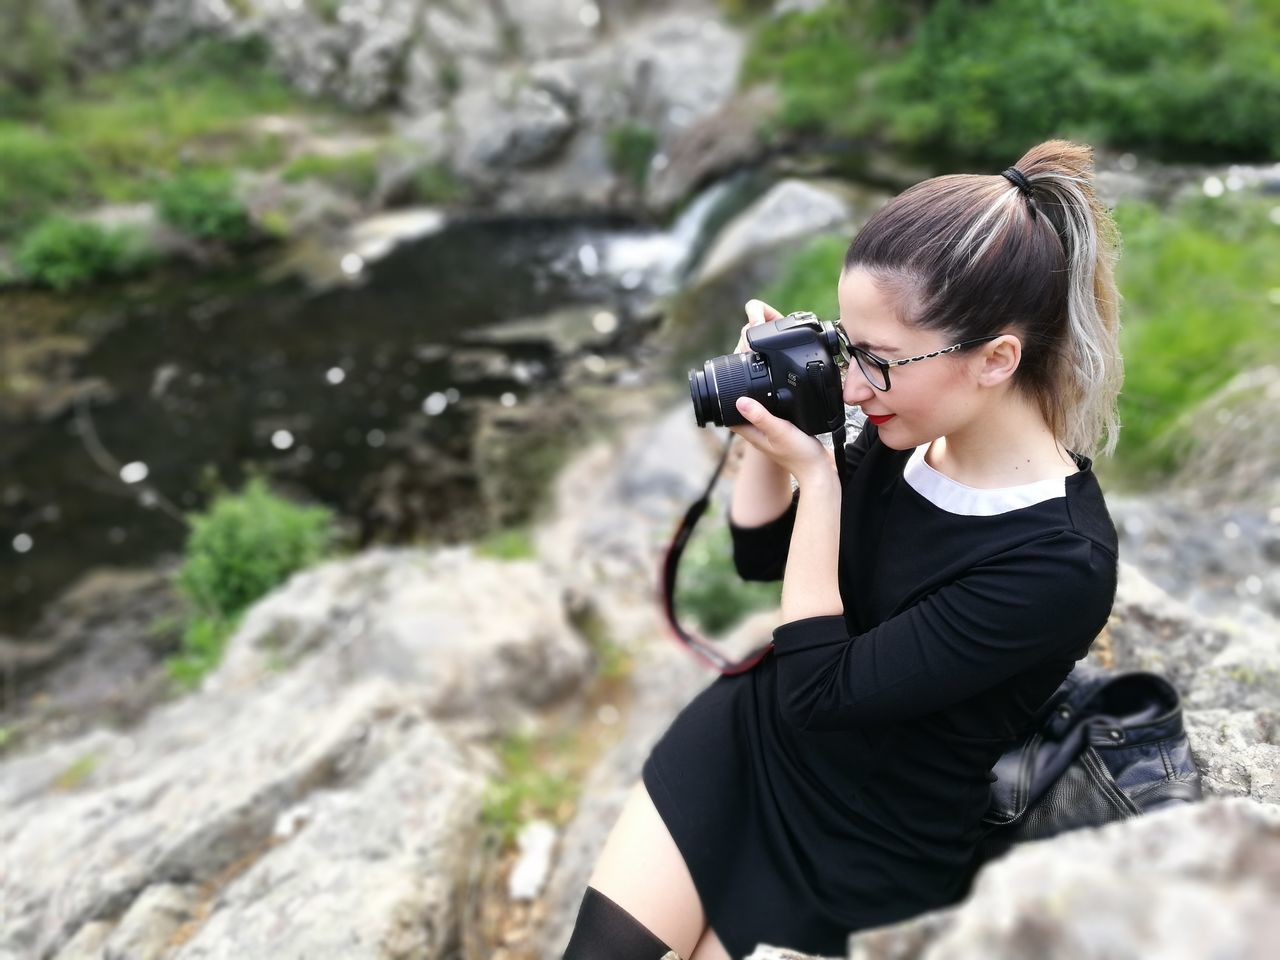 camera - photographic equipment, real people, photography themes, leisure activity, young women, digital single-lens reflex camera, one person, photographing, young adult, water, outdoors, rock - object, photographer, lifestyles, digital camera, day, casual clothing, technology, sitting, nature, women, slr camera, waterfall